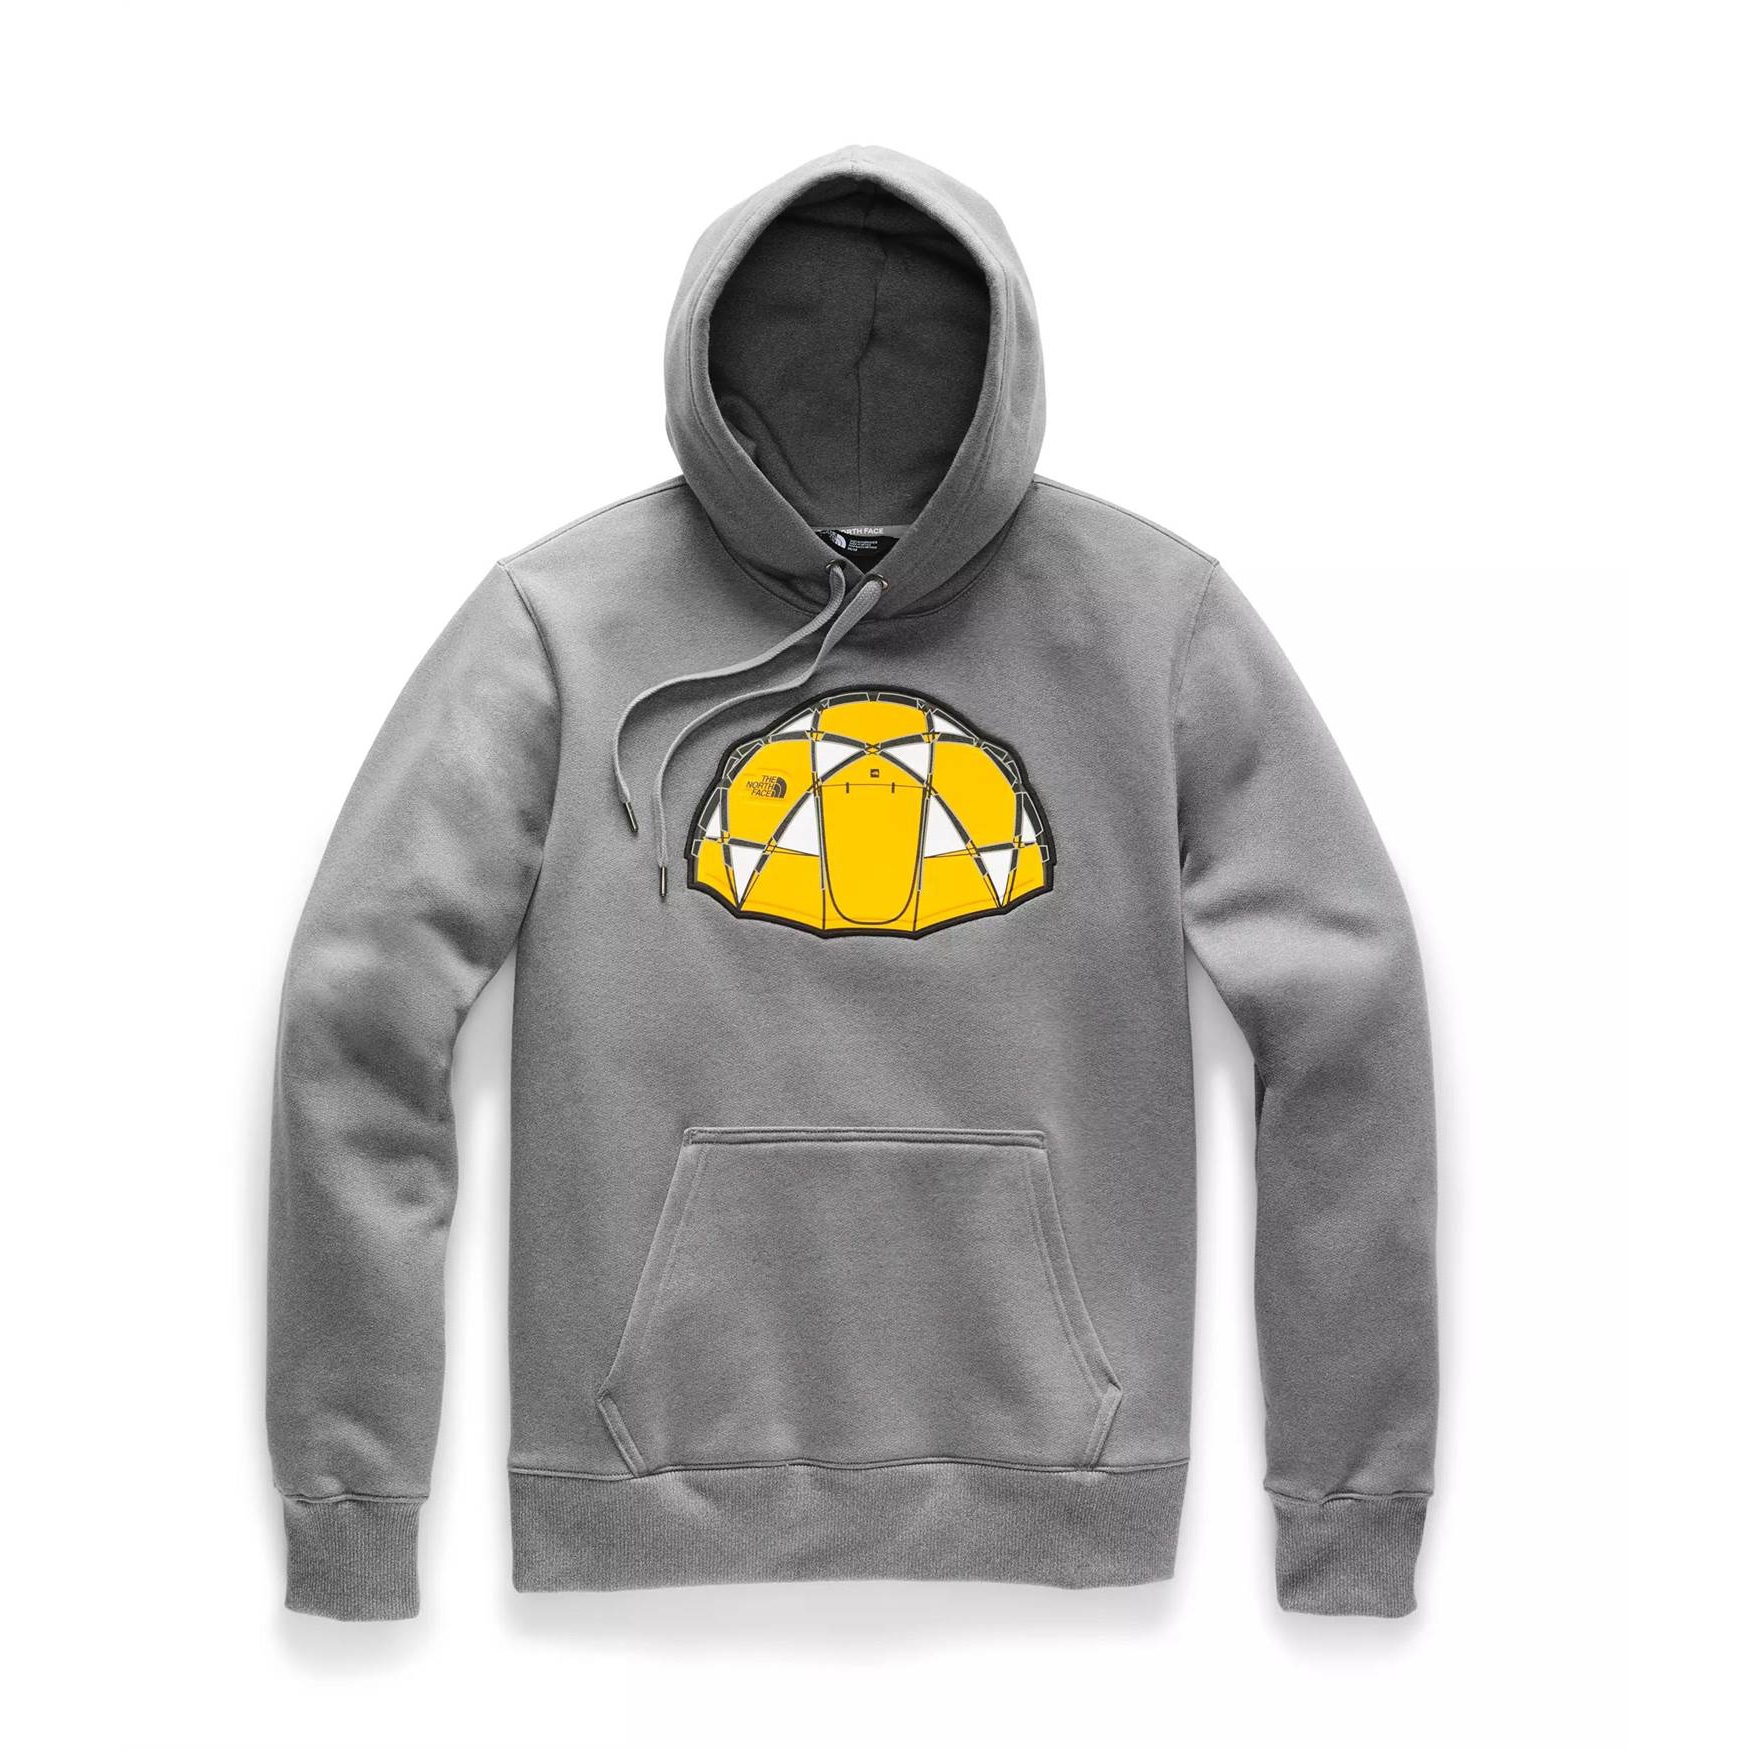 Fifth Pitch Heavyweight Pullover Hoodie - Men's